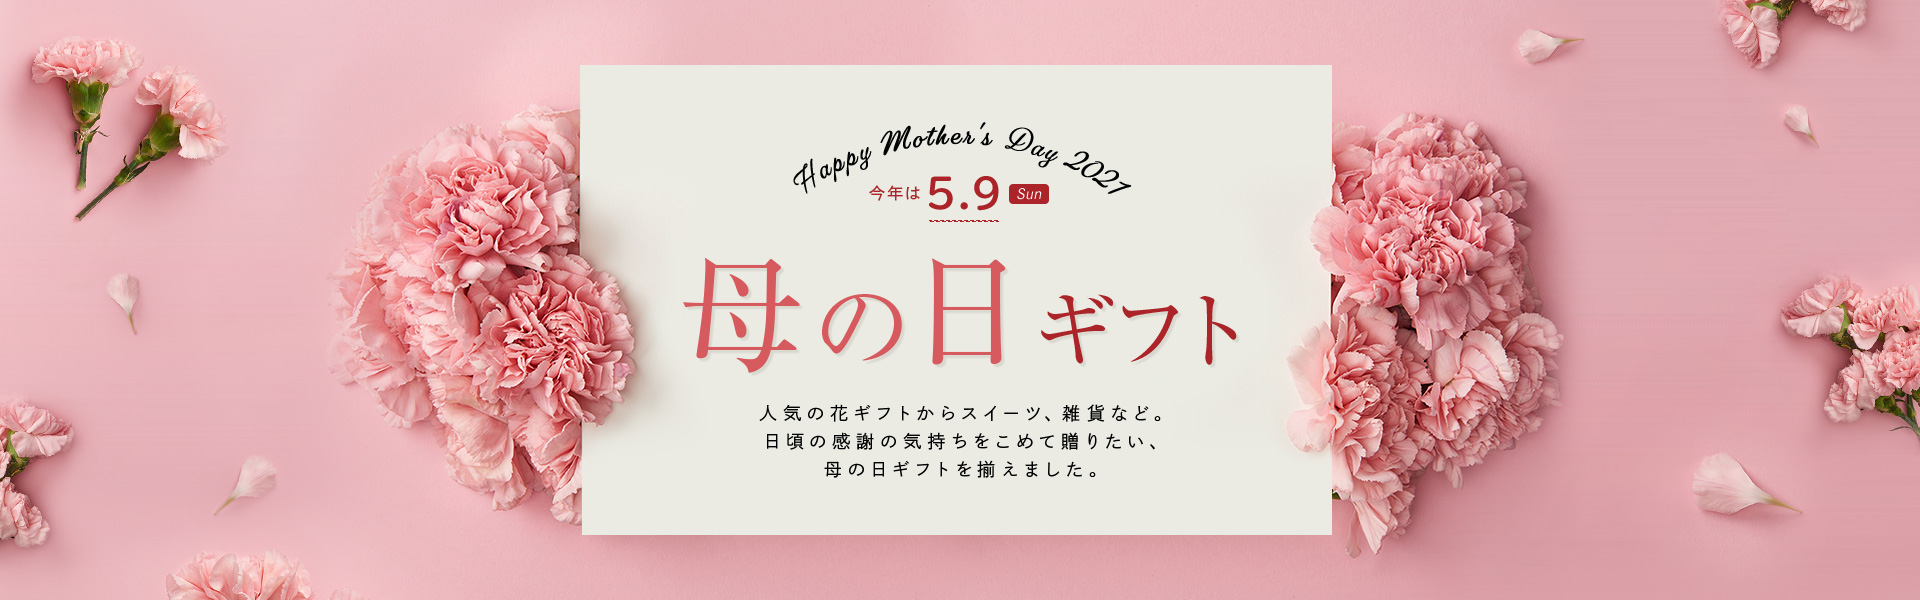 Happy Mother's Day 母の日ギフト2021| ANAショッピング A-style